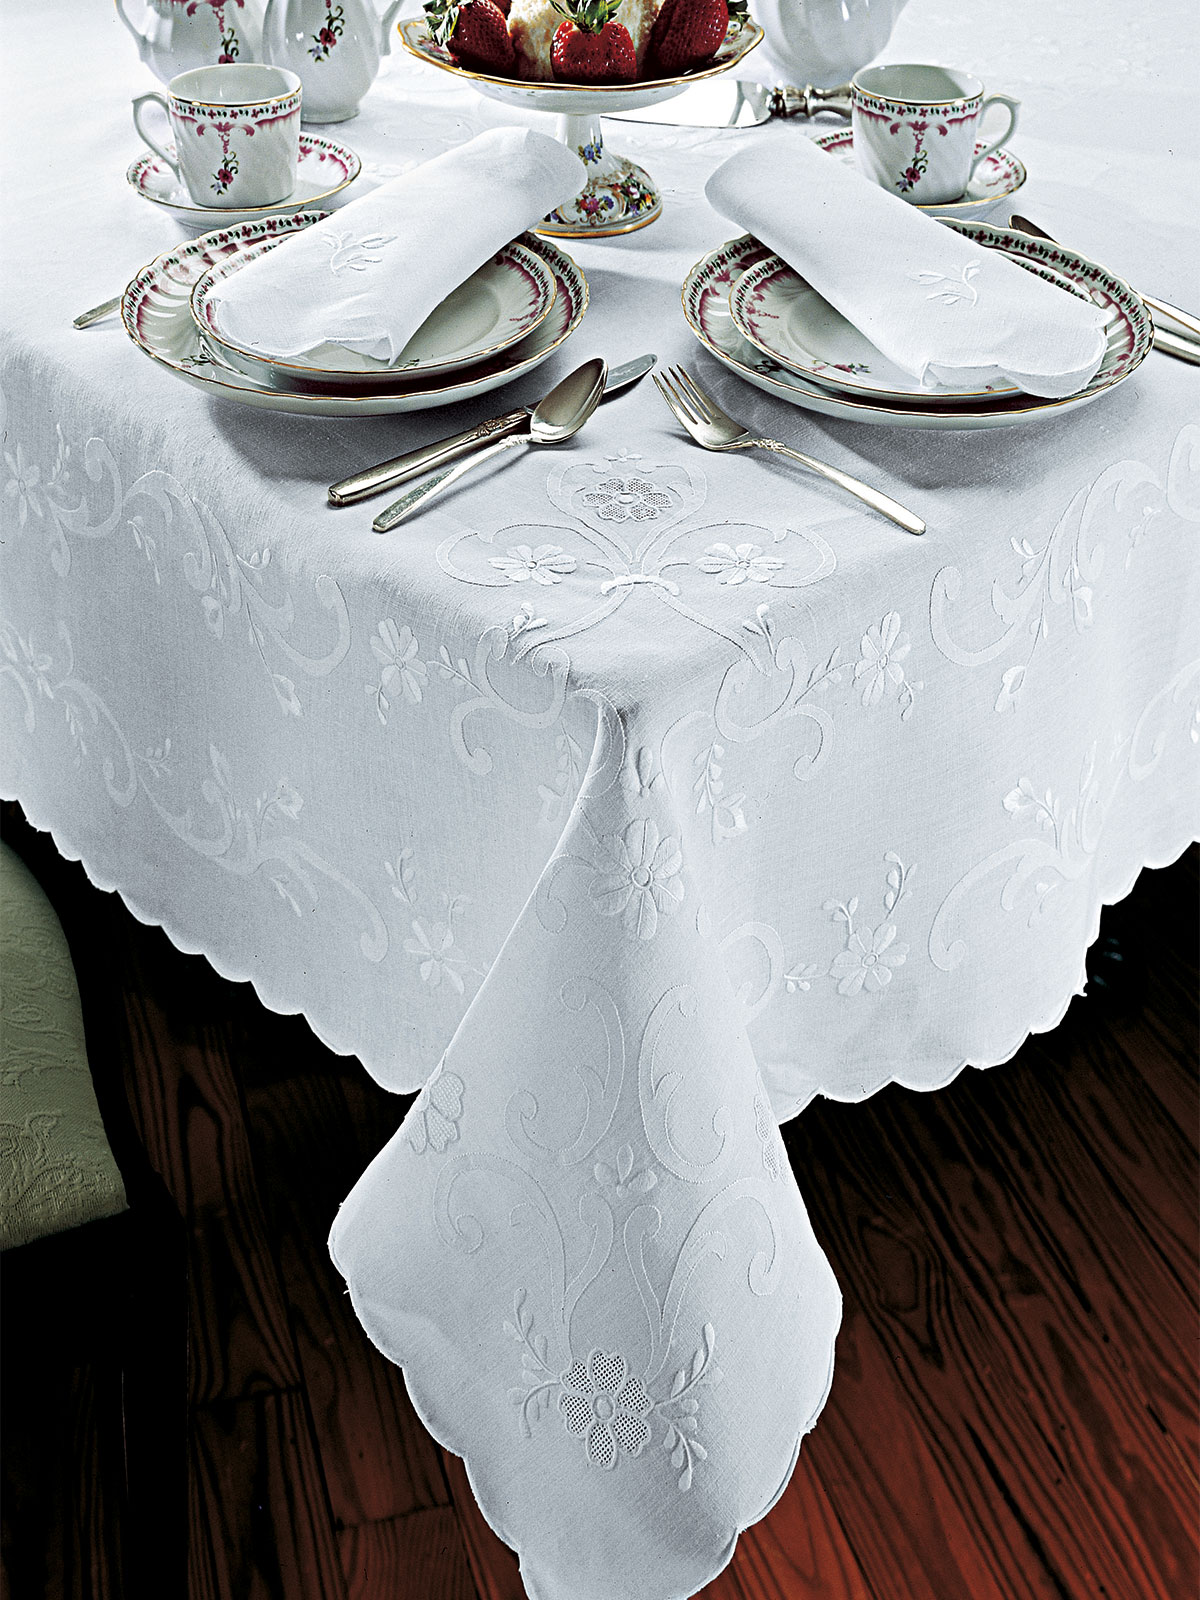 Patrician Tablecloth Patrician Placemat